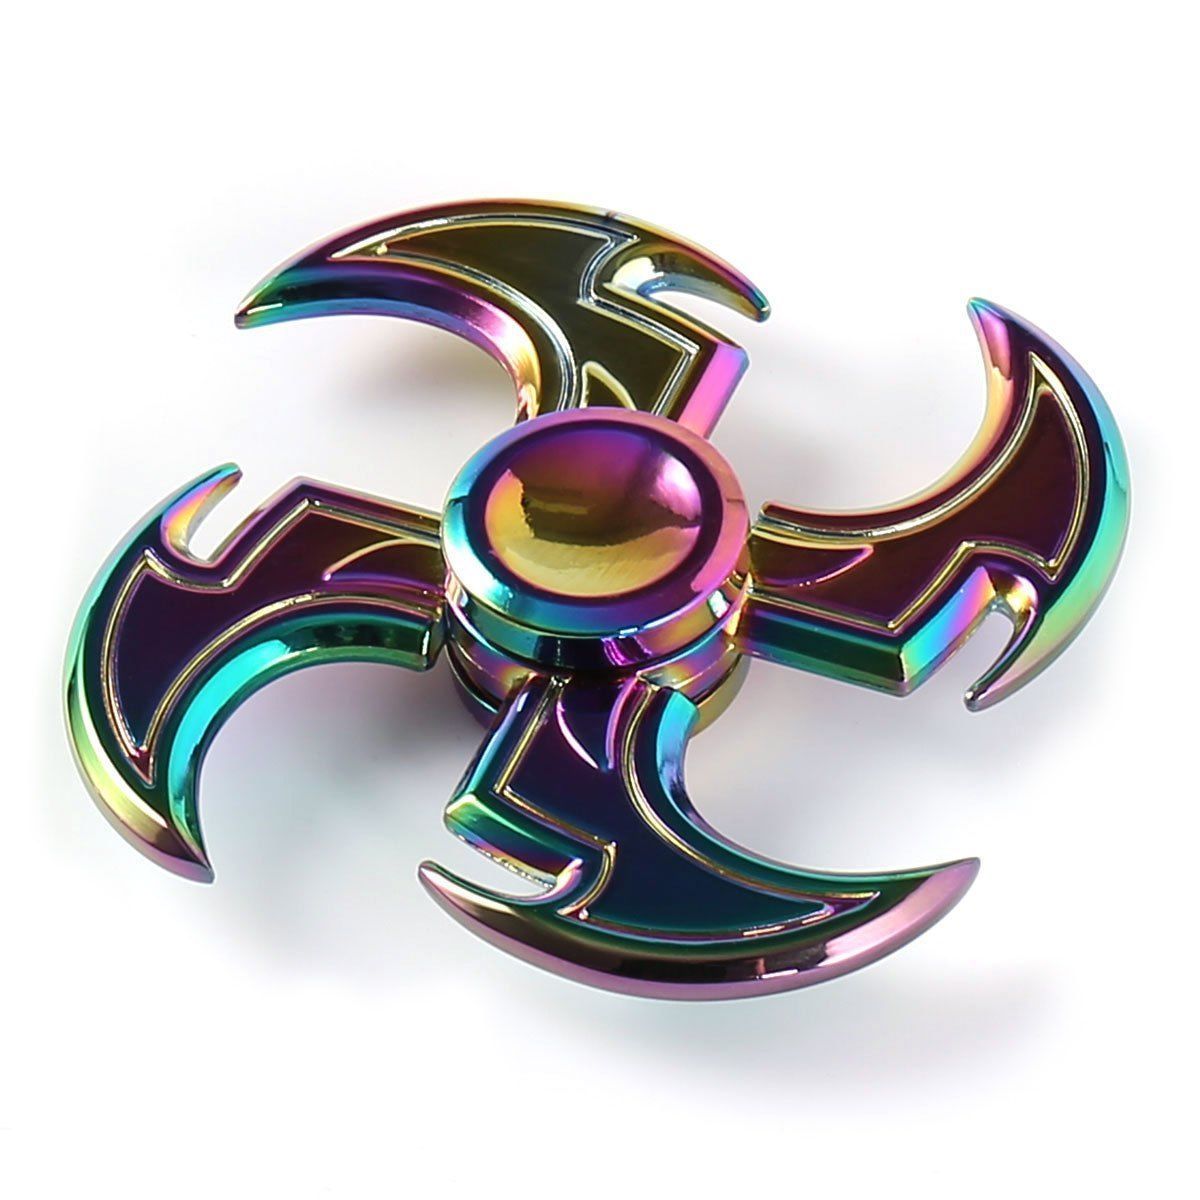 RARE Amazing Fidget Spinner Rainbow Metal Hand Finger Toy Adult Or Kids